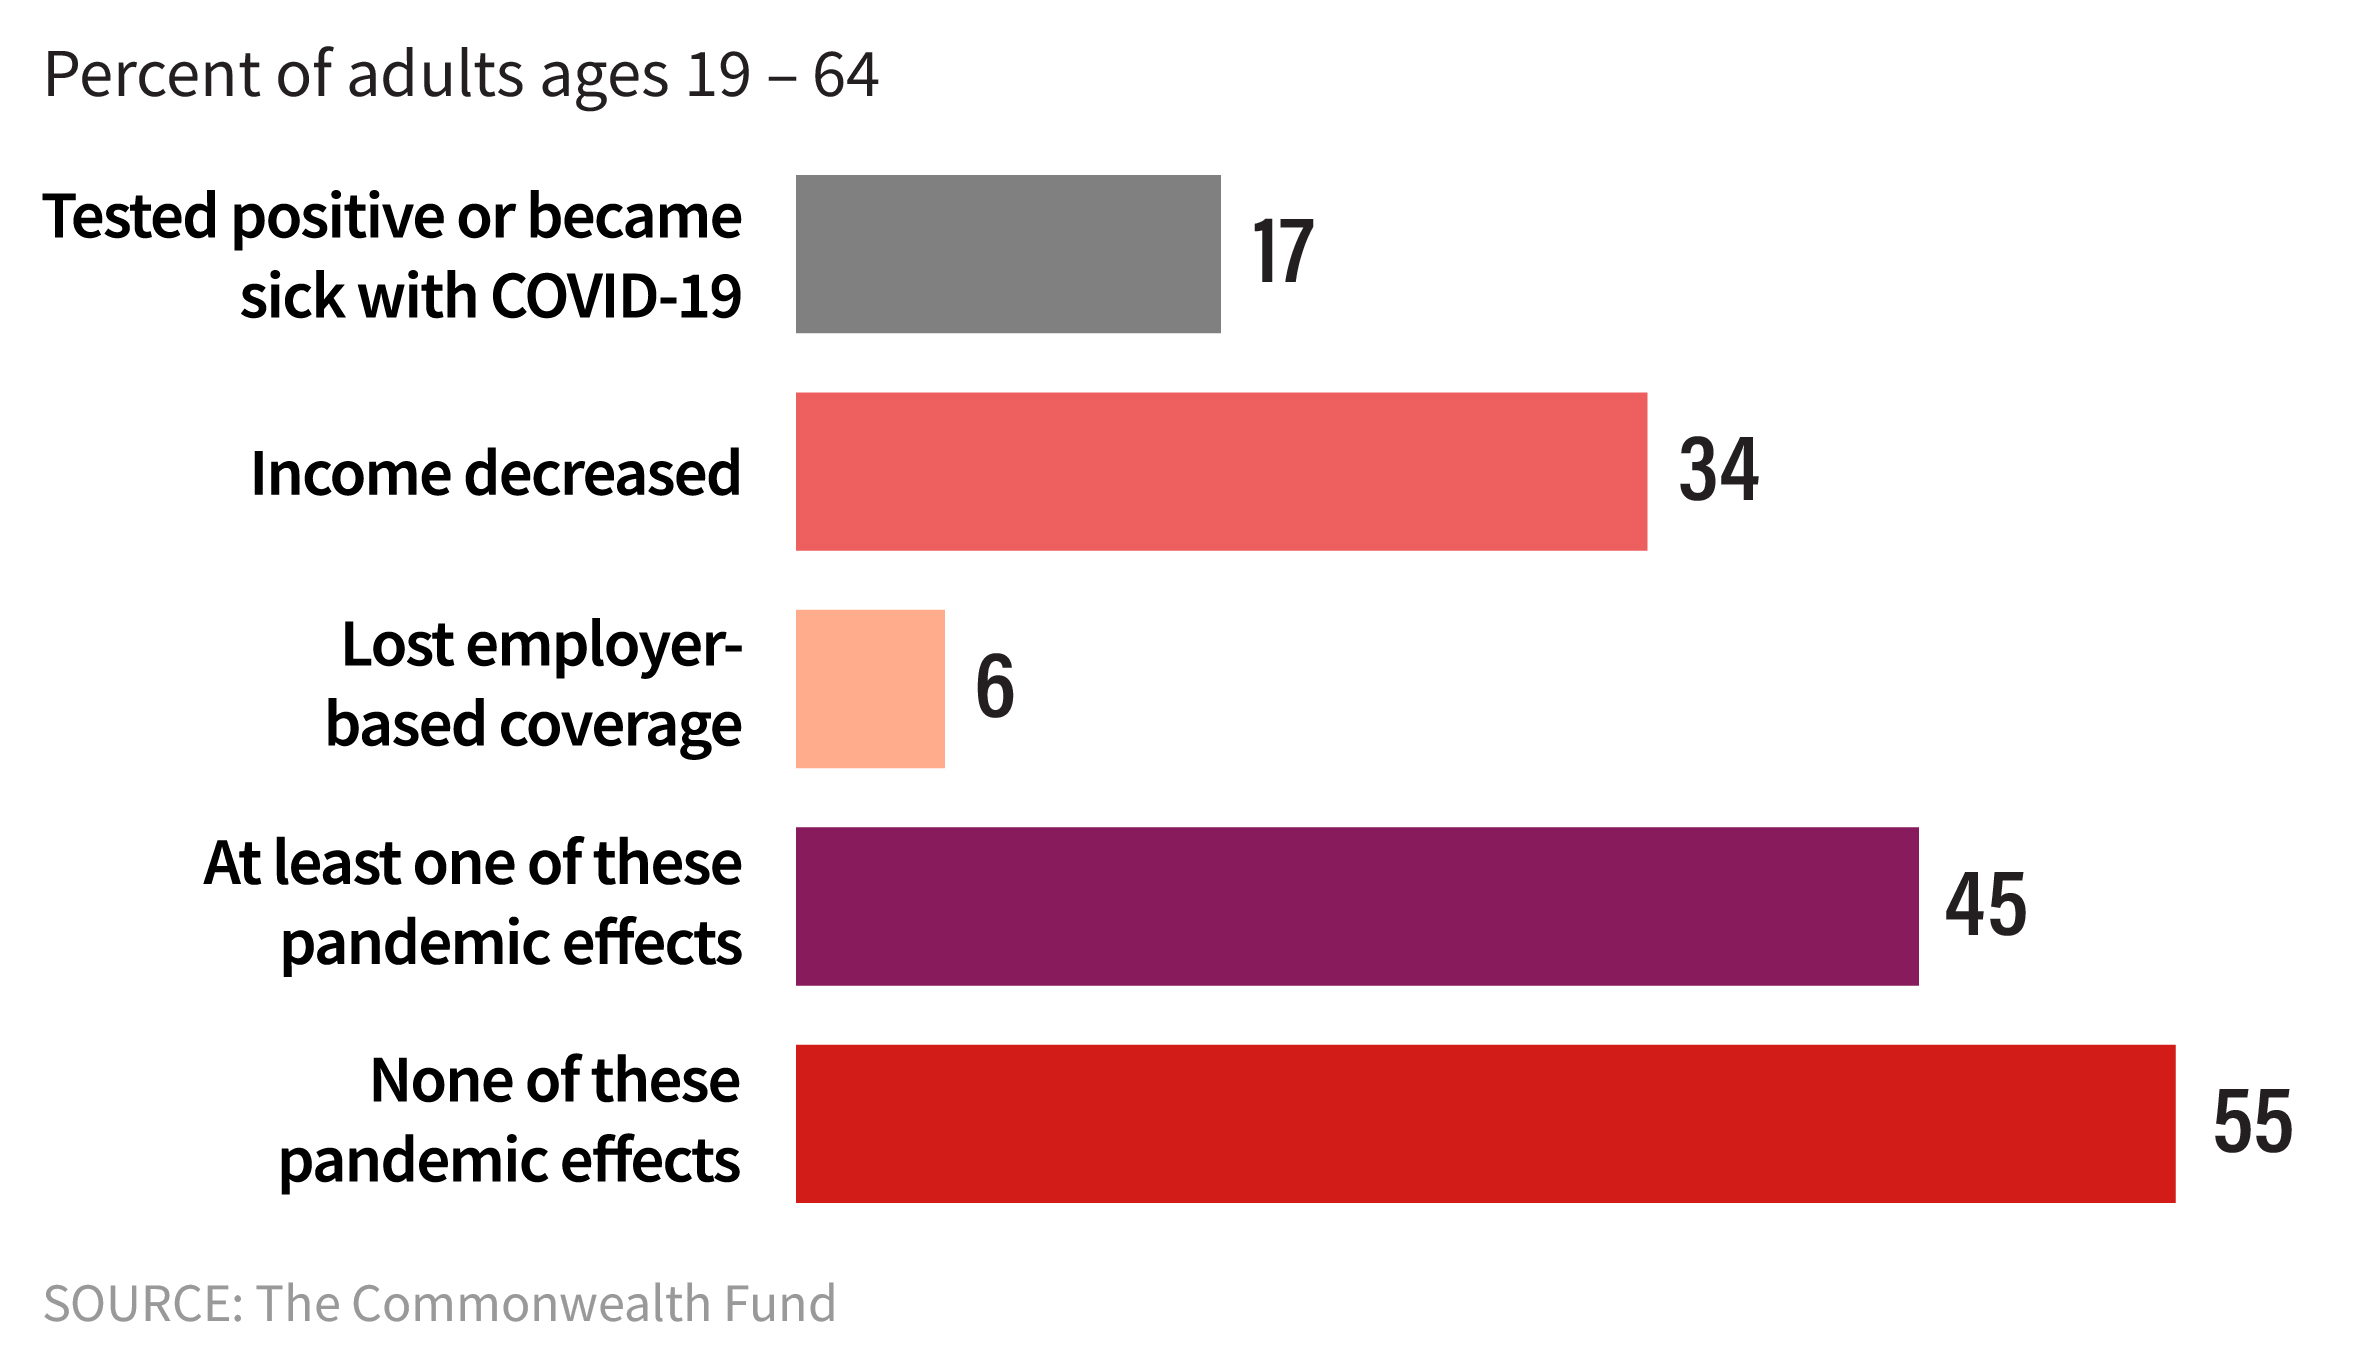 of adults aged nineteen to sixty four seventeen percent tested positive or became sick with covid nineteen and thirty four percent of them had income decrease and six percent of them lost employer based coverage